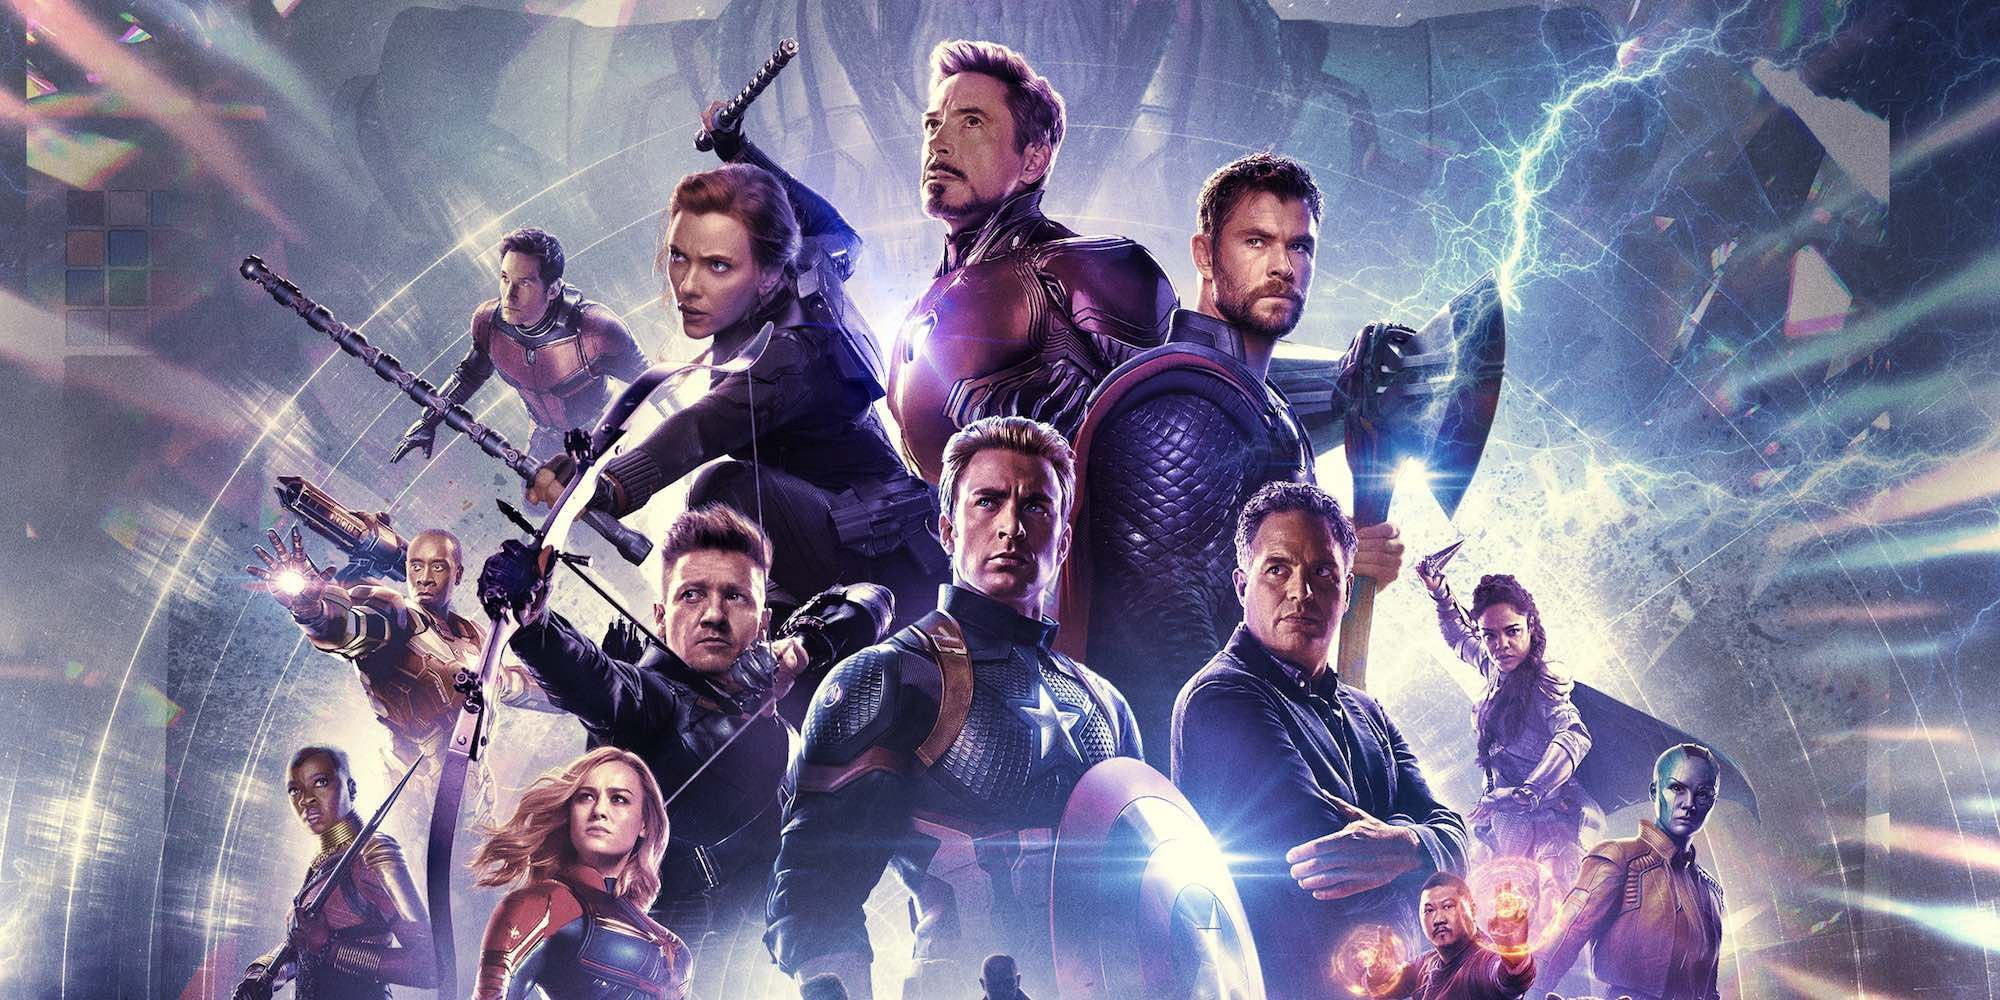 A mostly-male line-up of EndGame characters on a poster